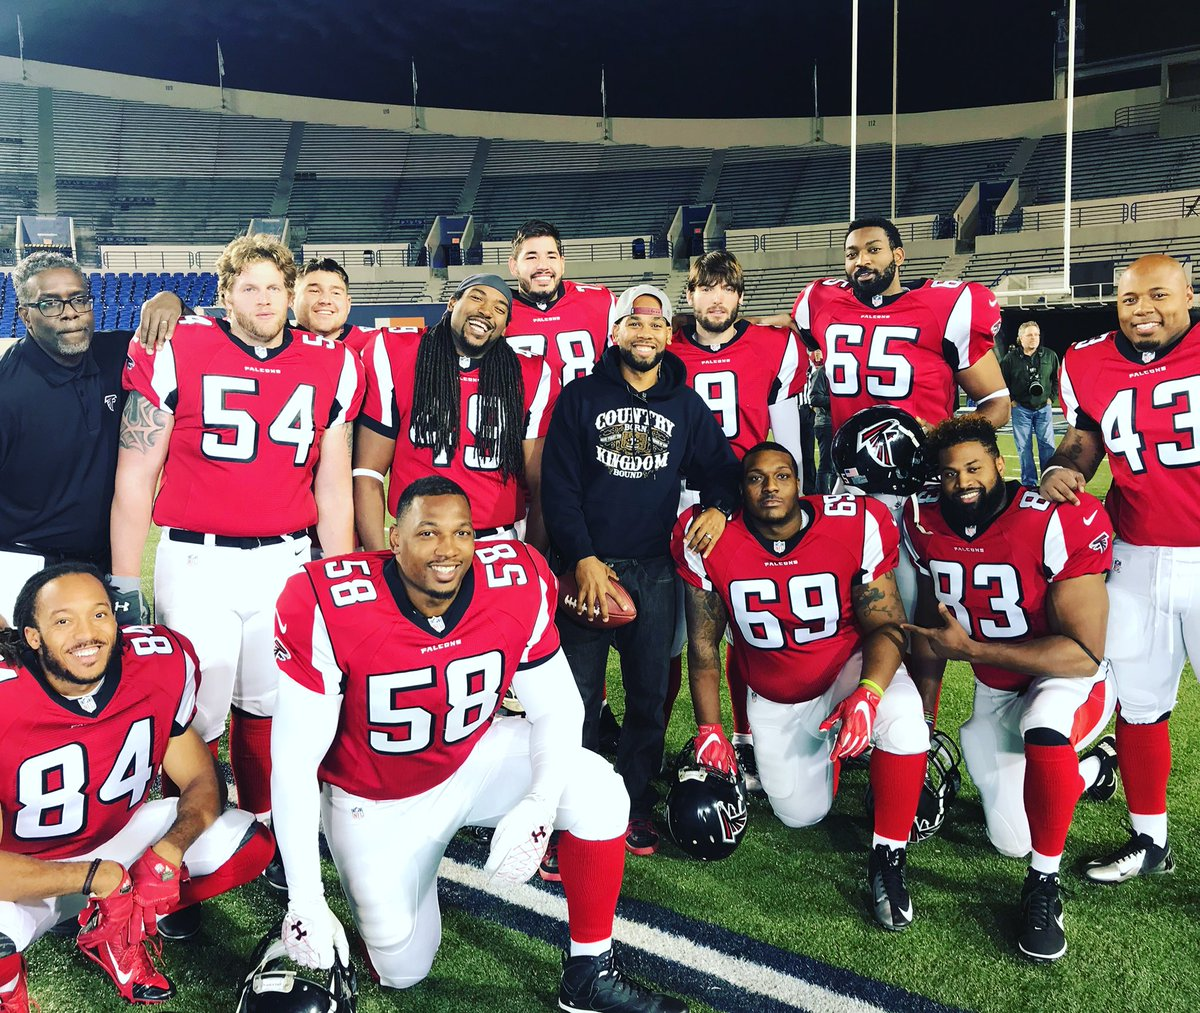 Finished up strong on the Brian Banks movie with this great group of guys! #BrianBanksMovie #setlife🎥 #memphis https://t.co/KC1gMjGUL5